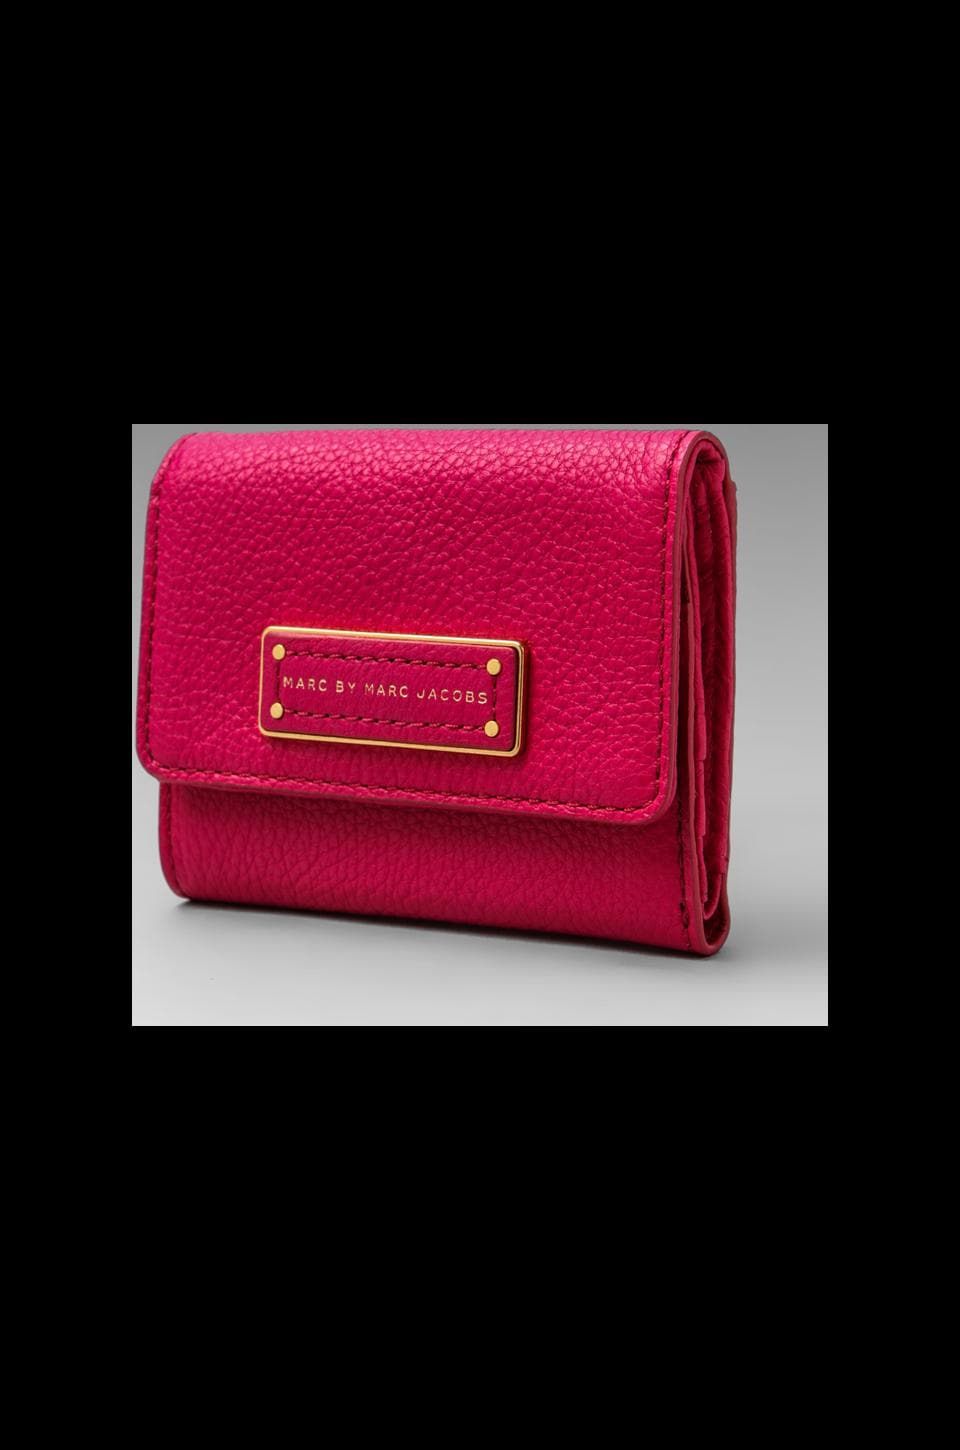 Marc by Marc Jacobs Too Hot to Handle New Billfold in Fuchsia